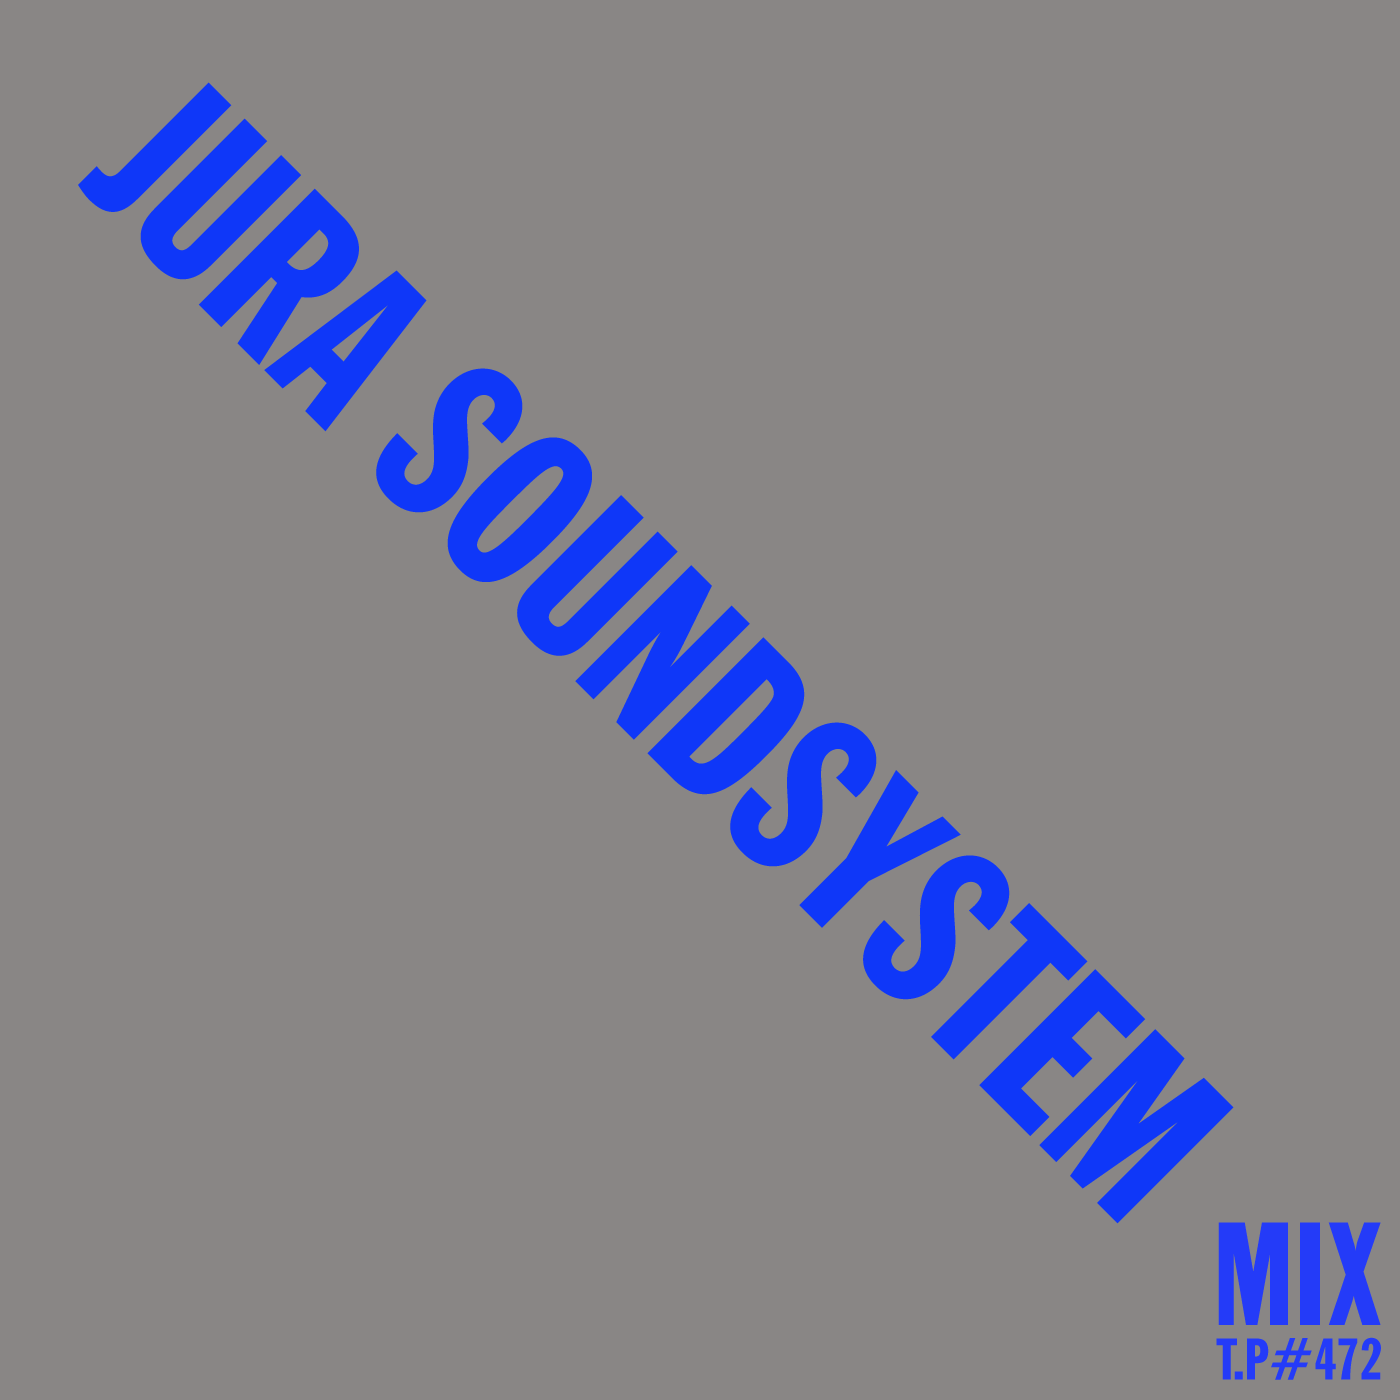 Jura, Soundsystem, Mix, Test Pressing, Isle Of Jura